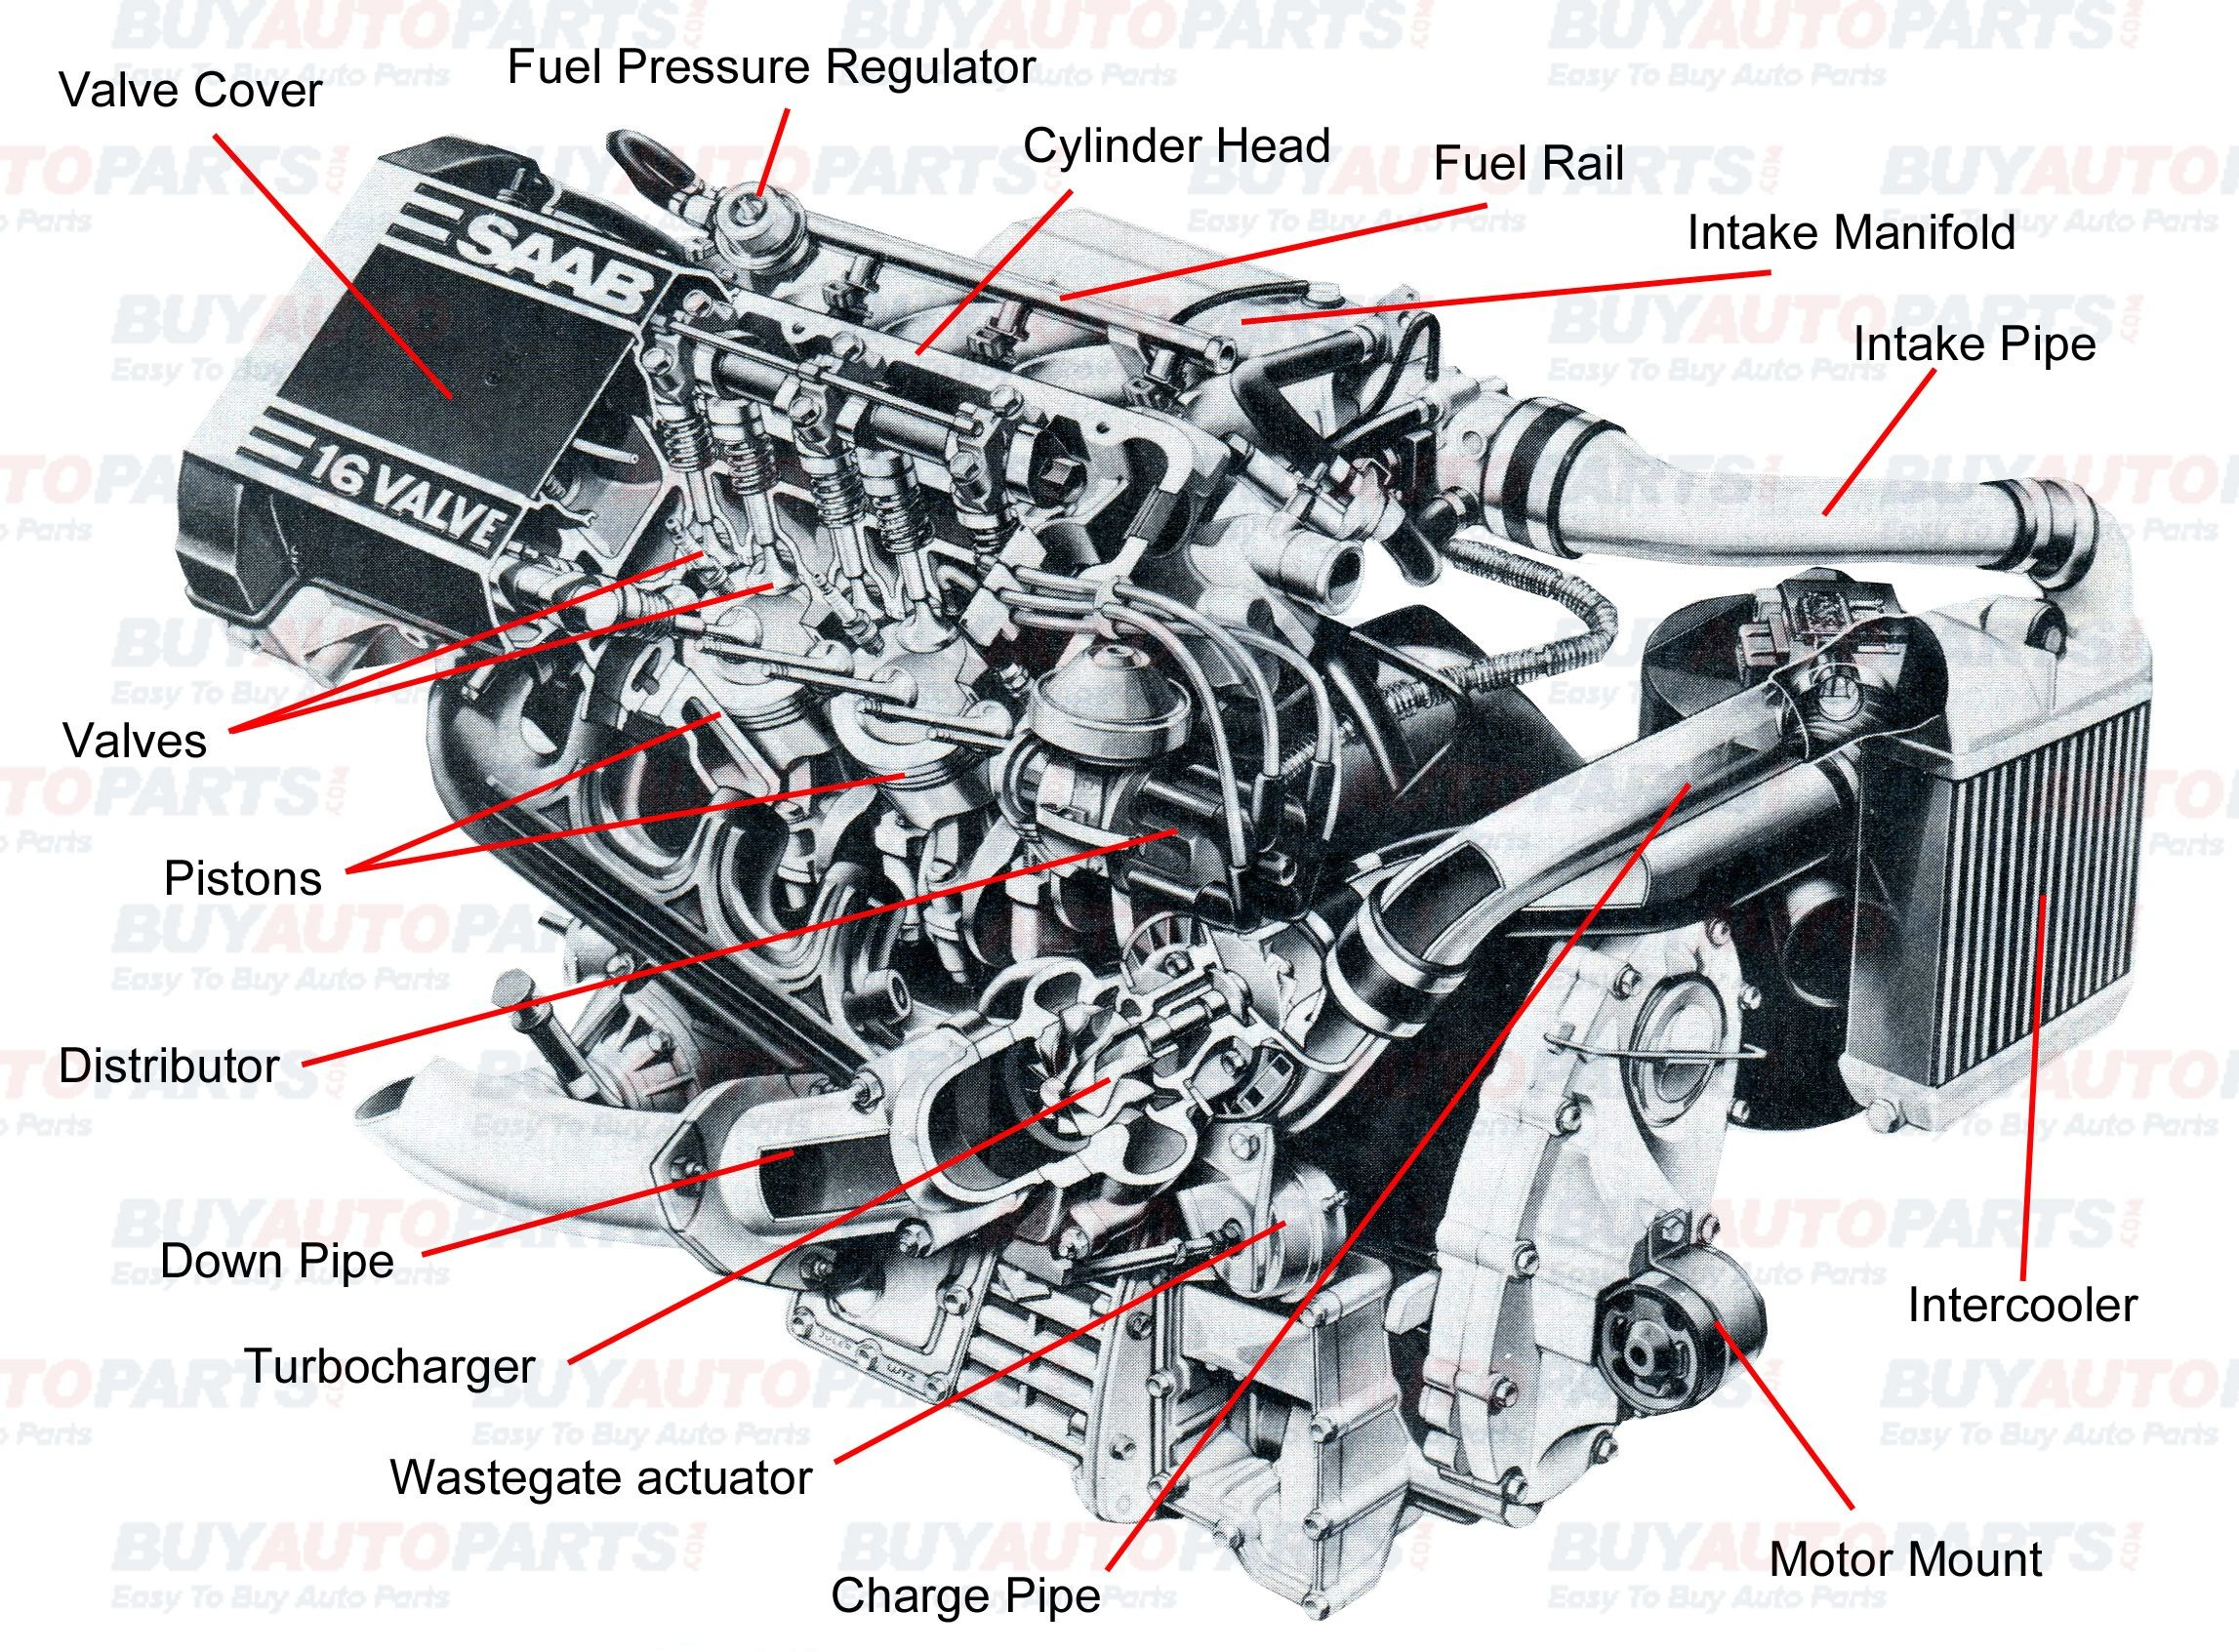 Basic Car Engine Parts Diagram Pin by Jimmiejanet Testellamwfz On What Does An Engine with Turbo Of Basic Car Engine Parts Diagram